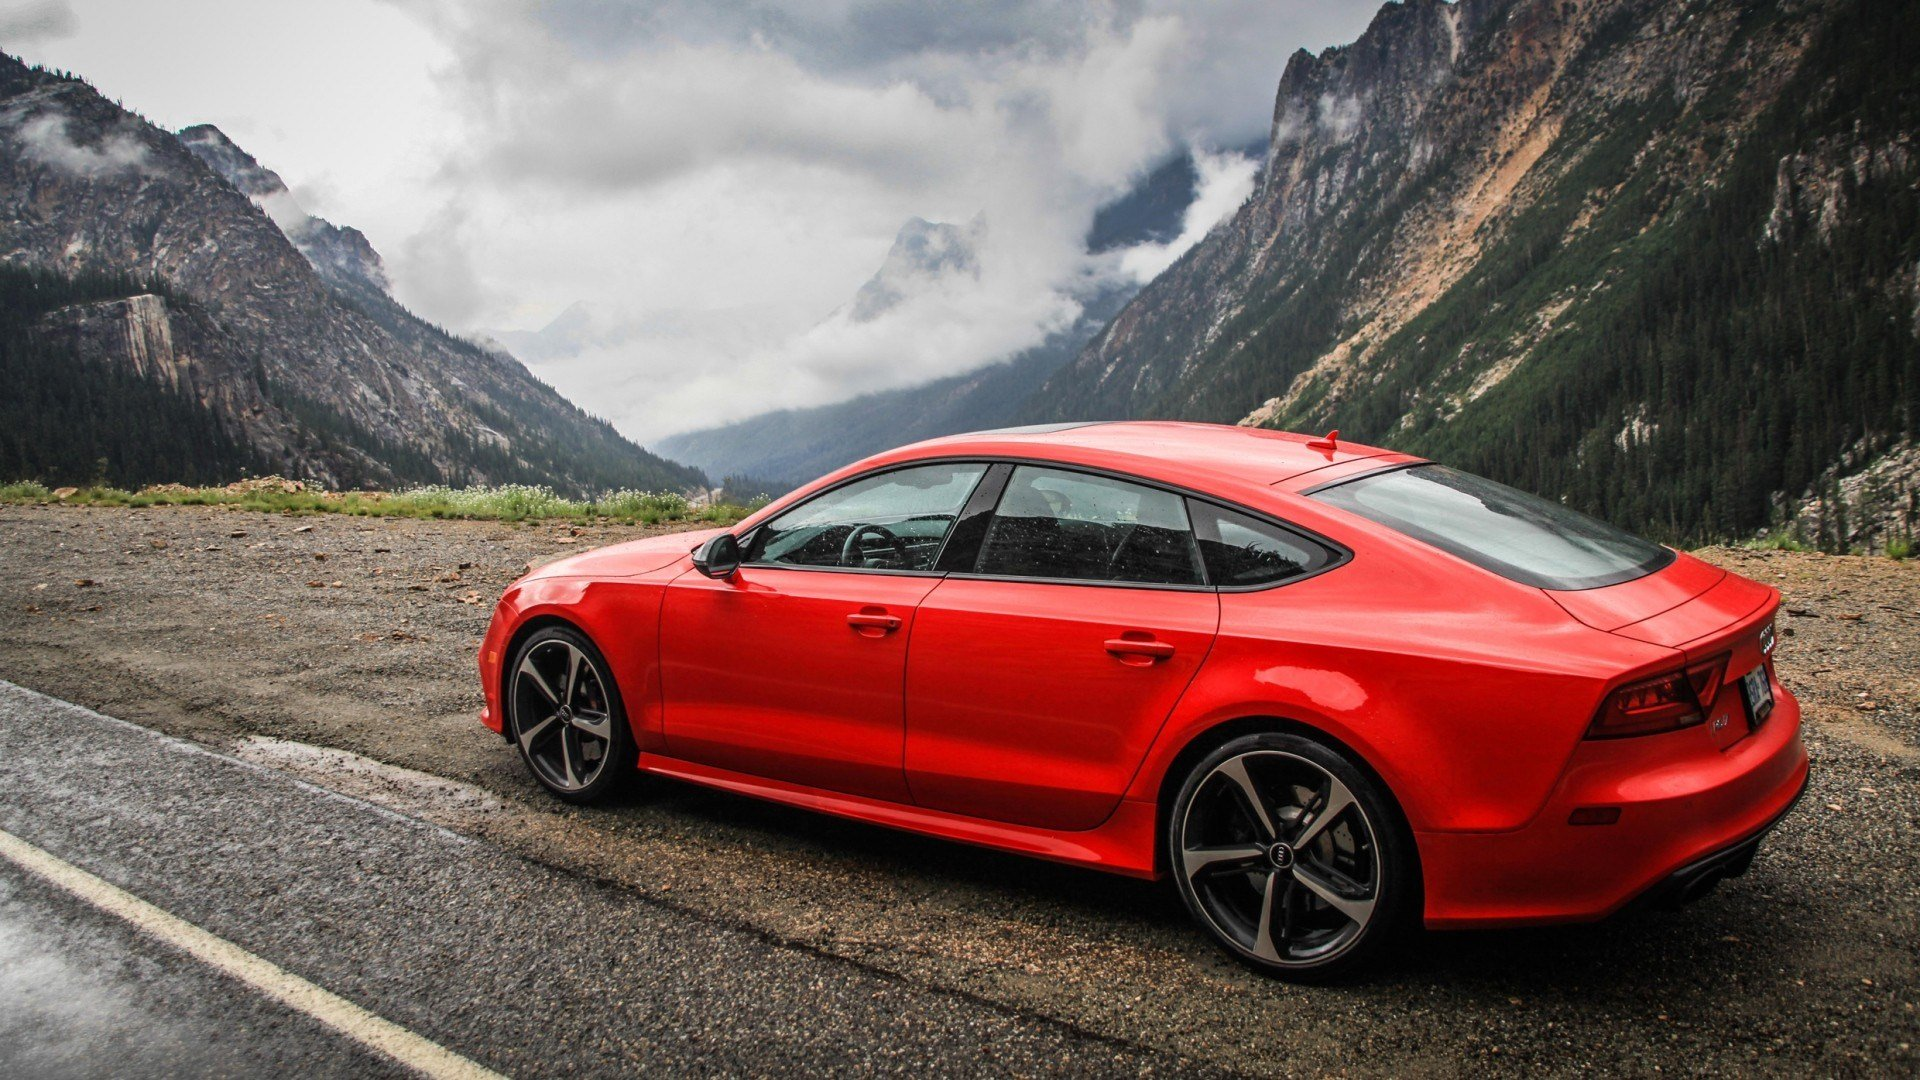 Latest Audi Rs7 Audi Audizone Red Cars Mountains Vehicle Free Download